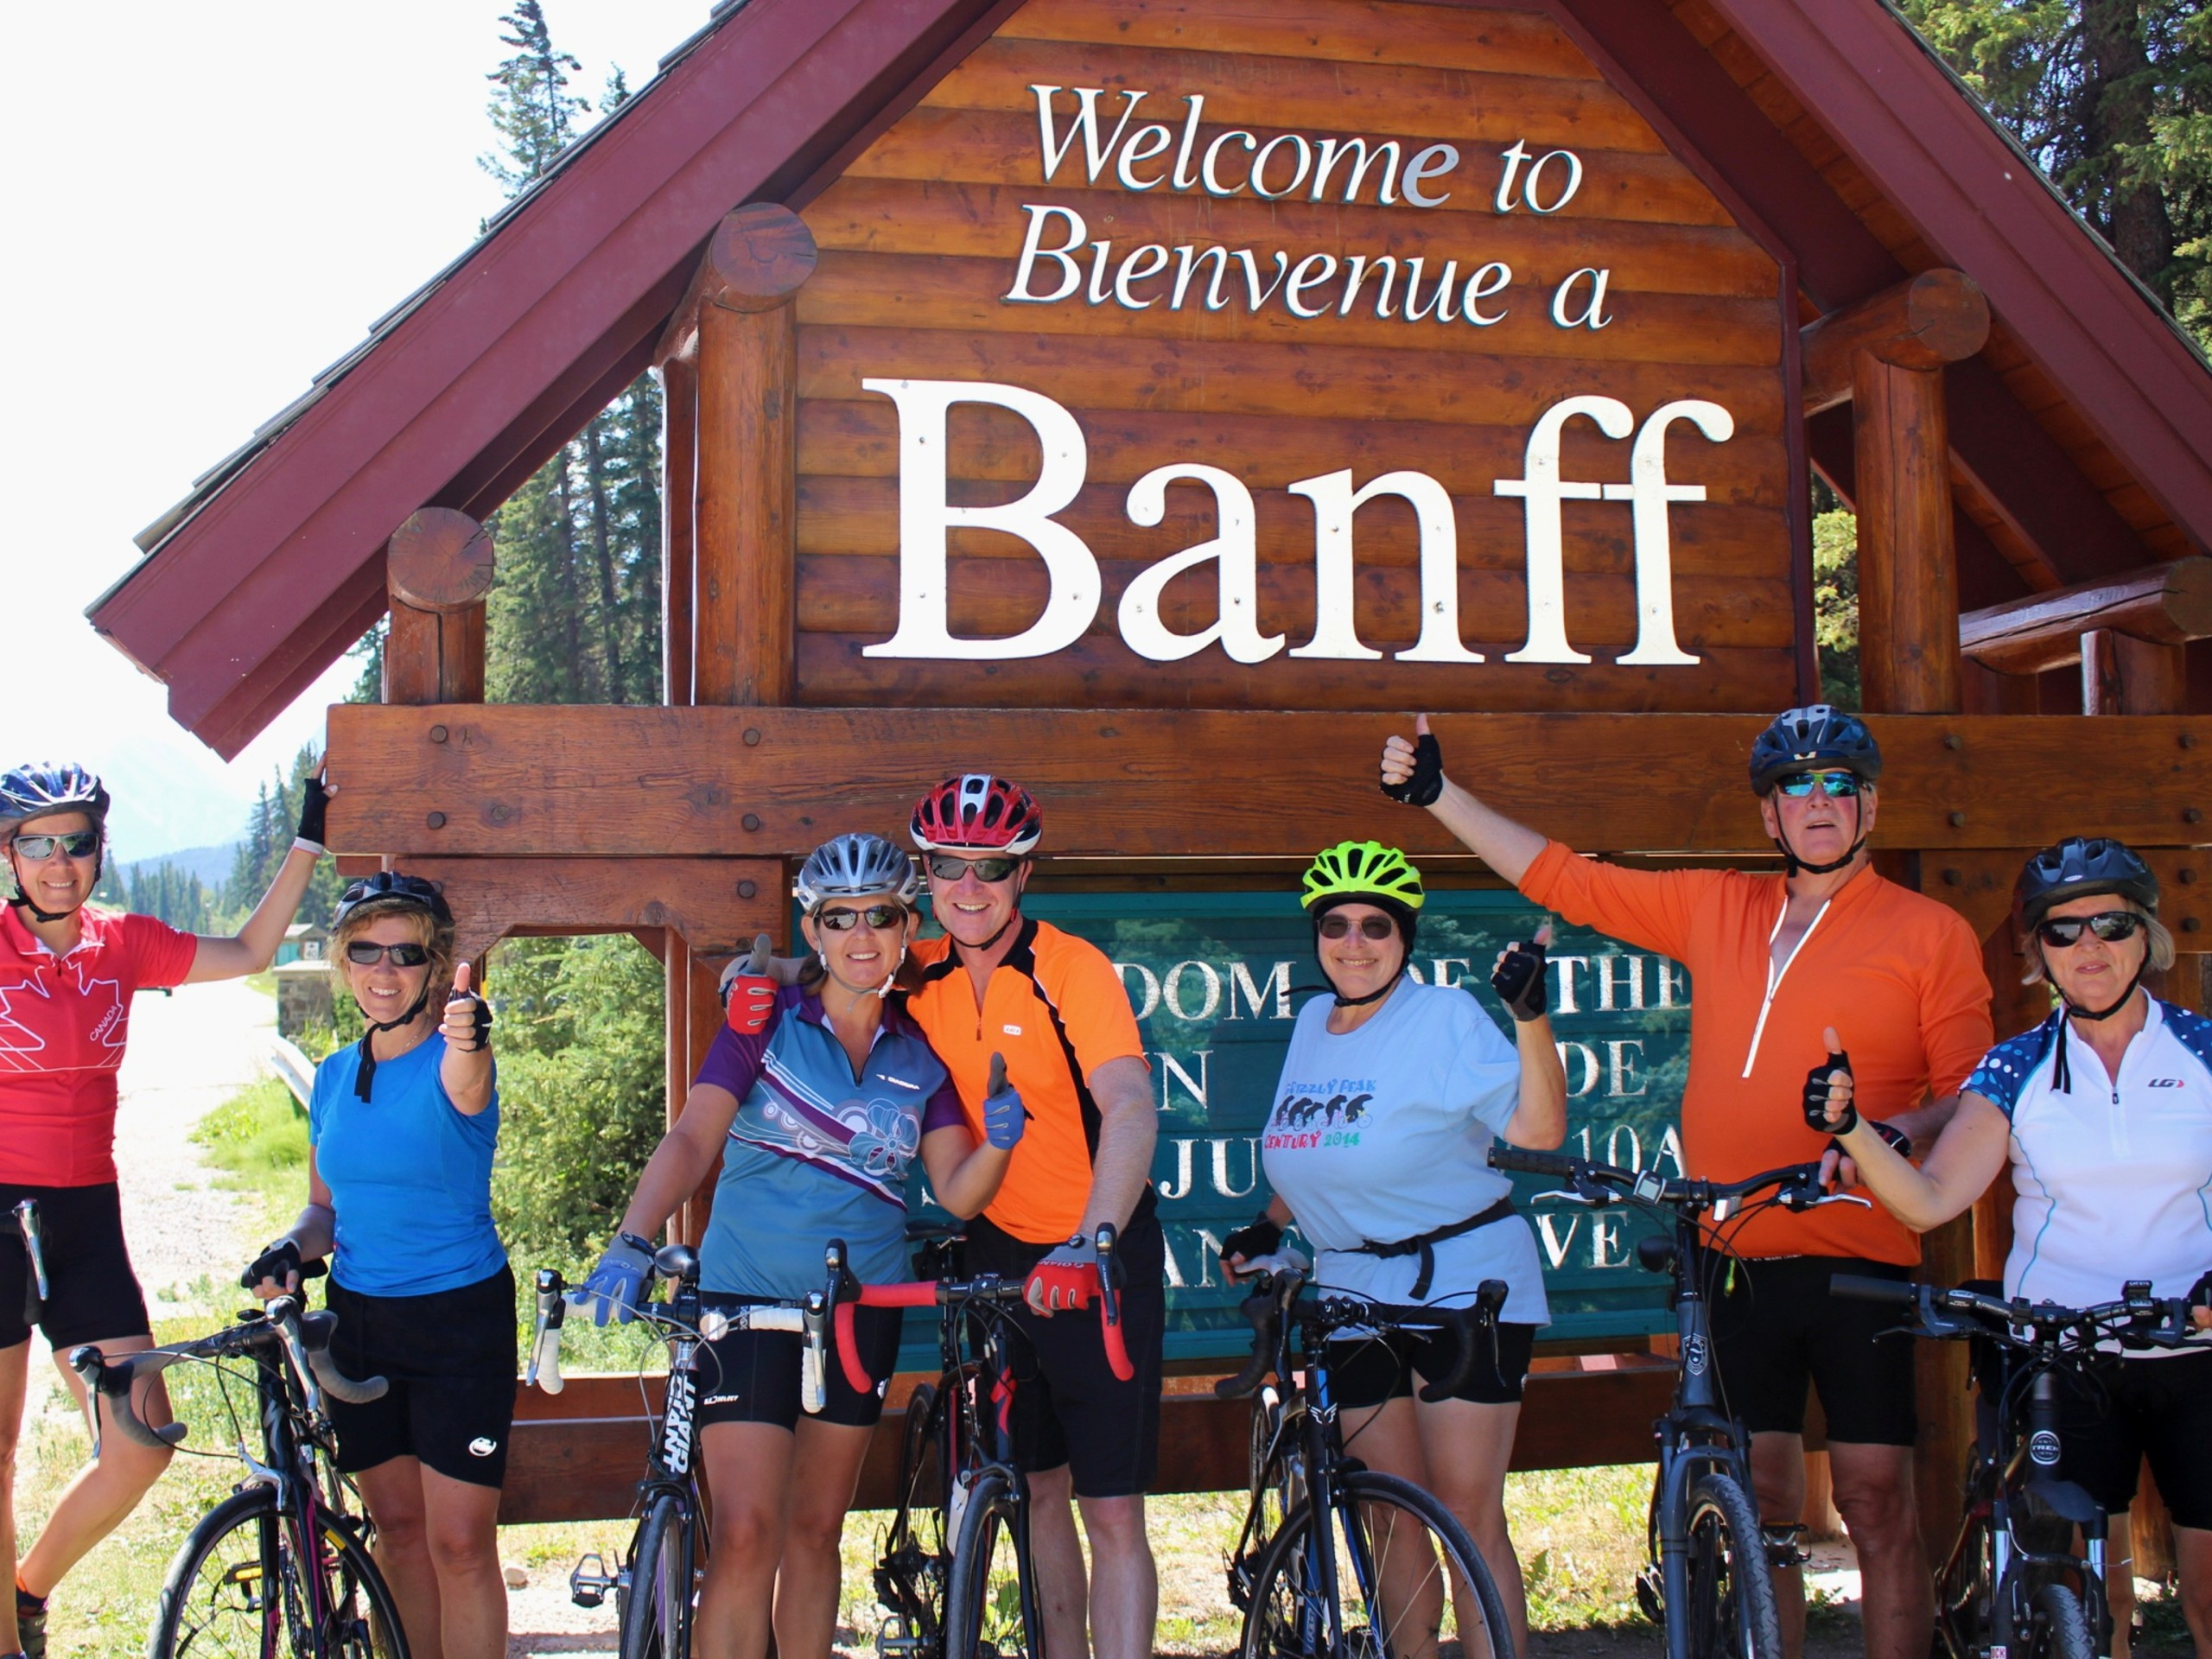 Cyclists posing near the entry sing to Banff